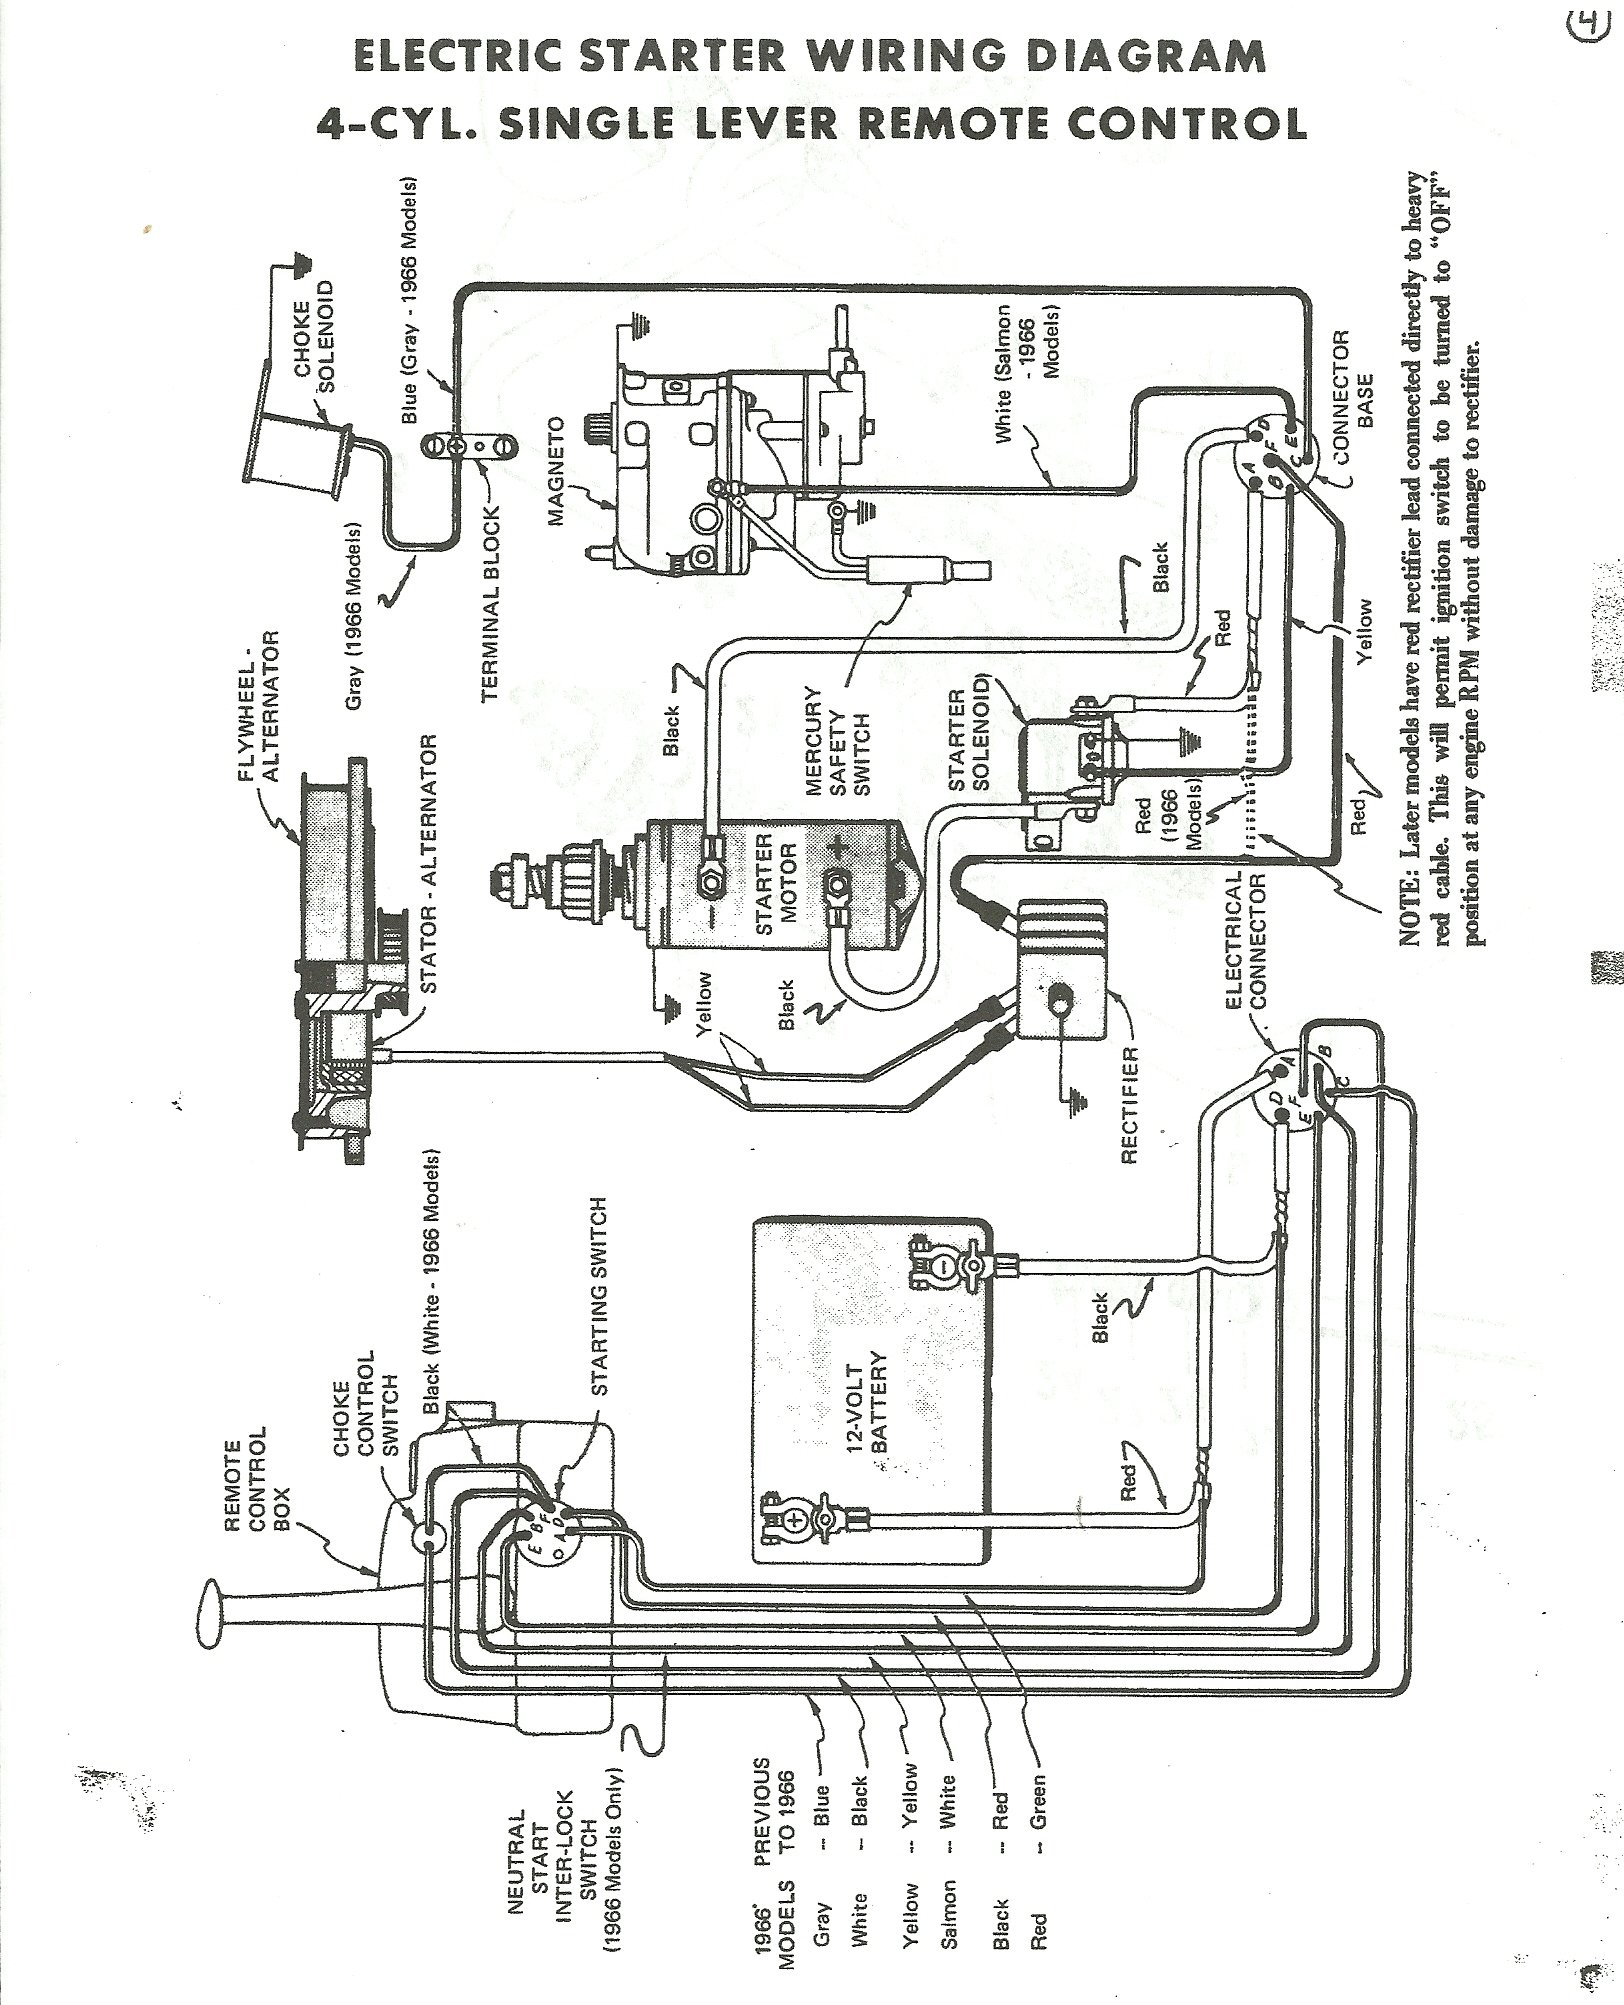 mercury 14 pin wiring harness mercury marine wiring harness diagram solidfonts mercury 14 pin wiring harness diagram